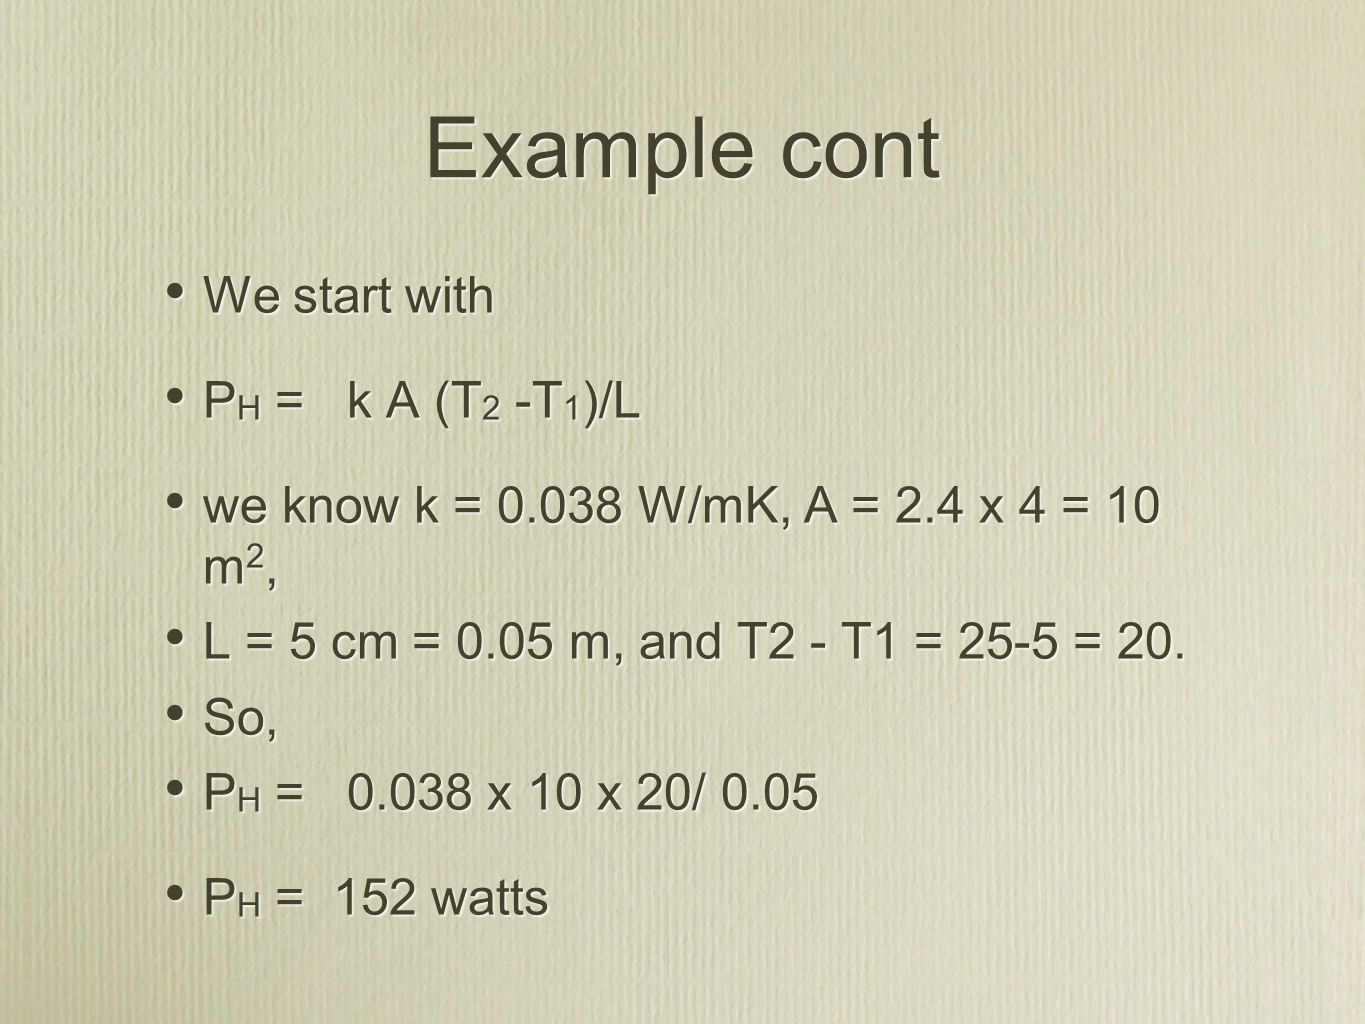 Example cont We start with P H = k A (T 2 -T 1 )/L we know k = 0.038 W/mK, A = 2.4 x 4 = 10 m 2, L = 5 cm = 0.05 m, and T2 - T1 = 25-5 = 20.